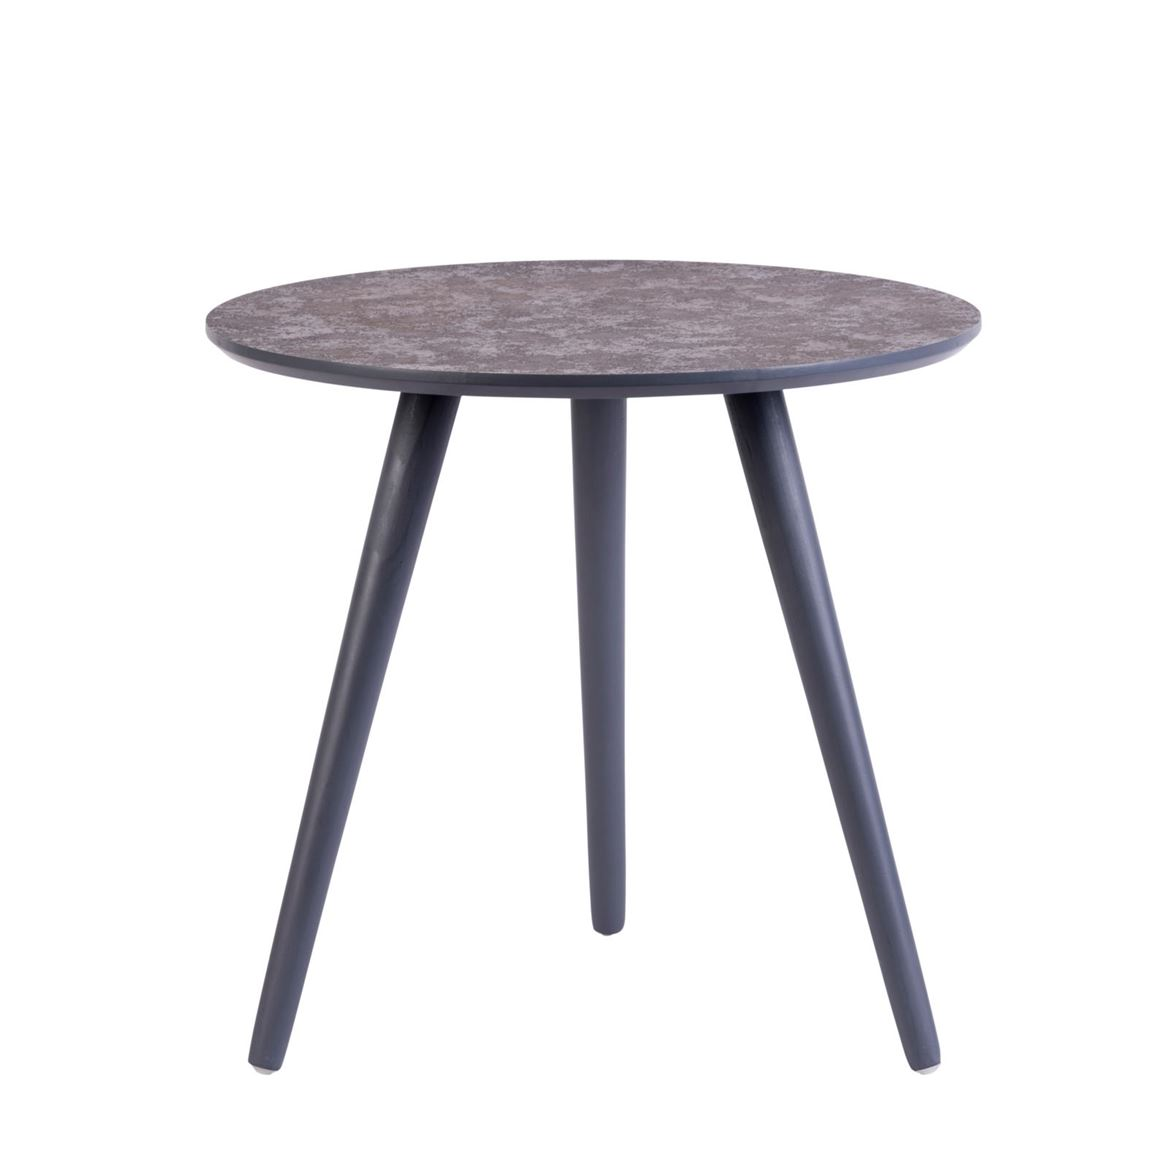 CRATER Table d'appoint gris H 47 cm; Ø 50 cm_crater-table-d'appoint-gris-h-47-cm;-ø-50-cm